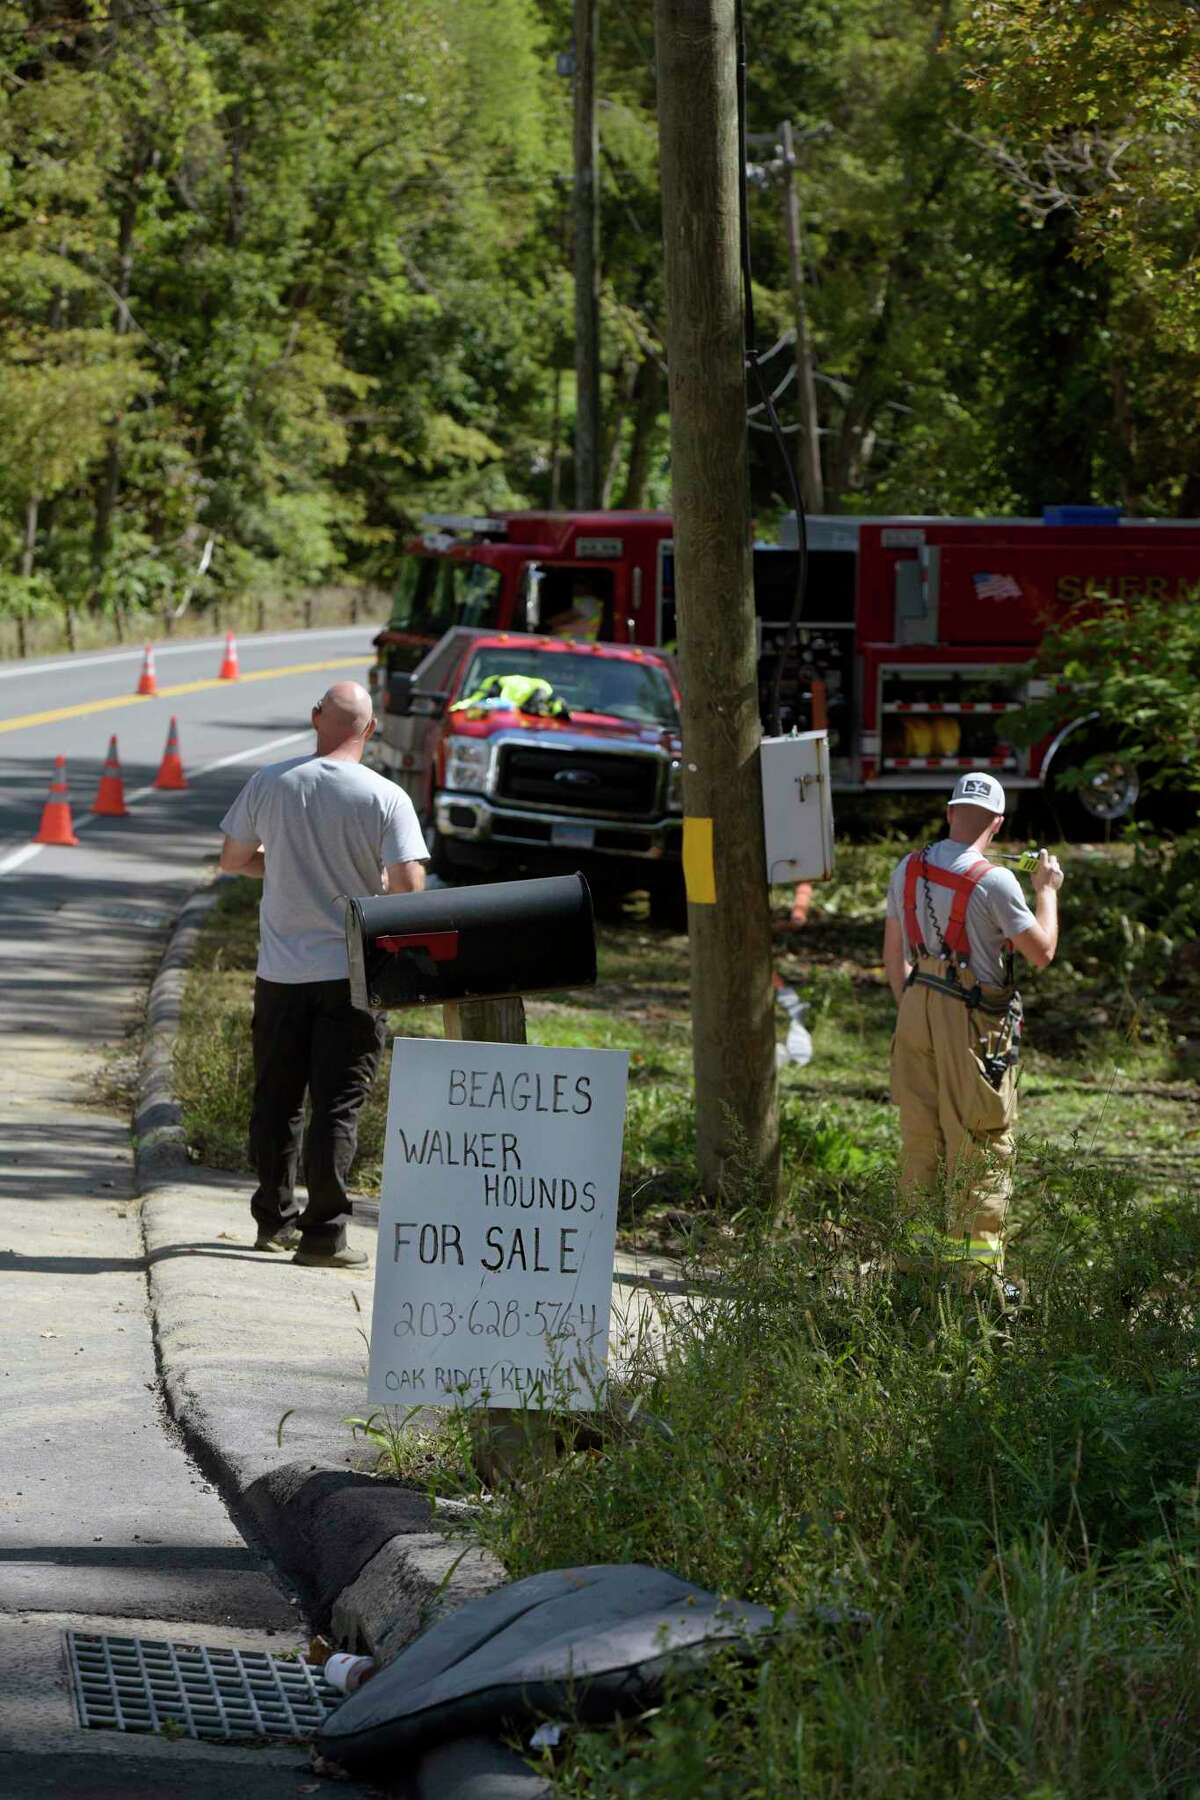 One person is unaccounted for as a result of a fire at a Route 55 North home on Sunday, according to officials. The fire, which was reported around 6 p.m. Sunday, and is still under investigation. Monday, September 20, 2021, Shermanb, Conn.